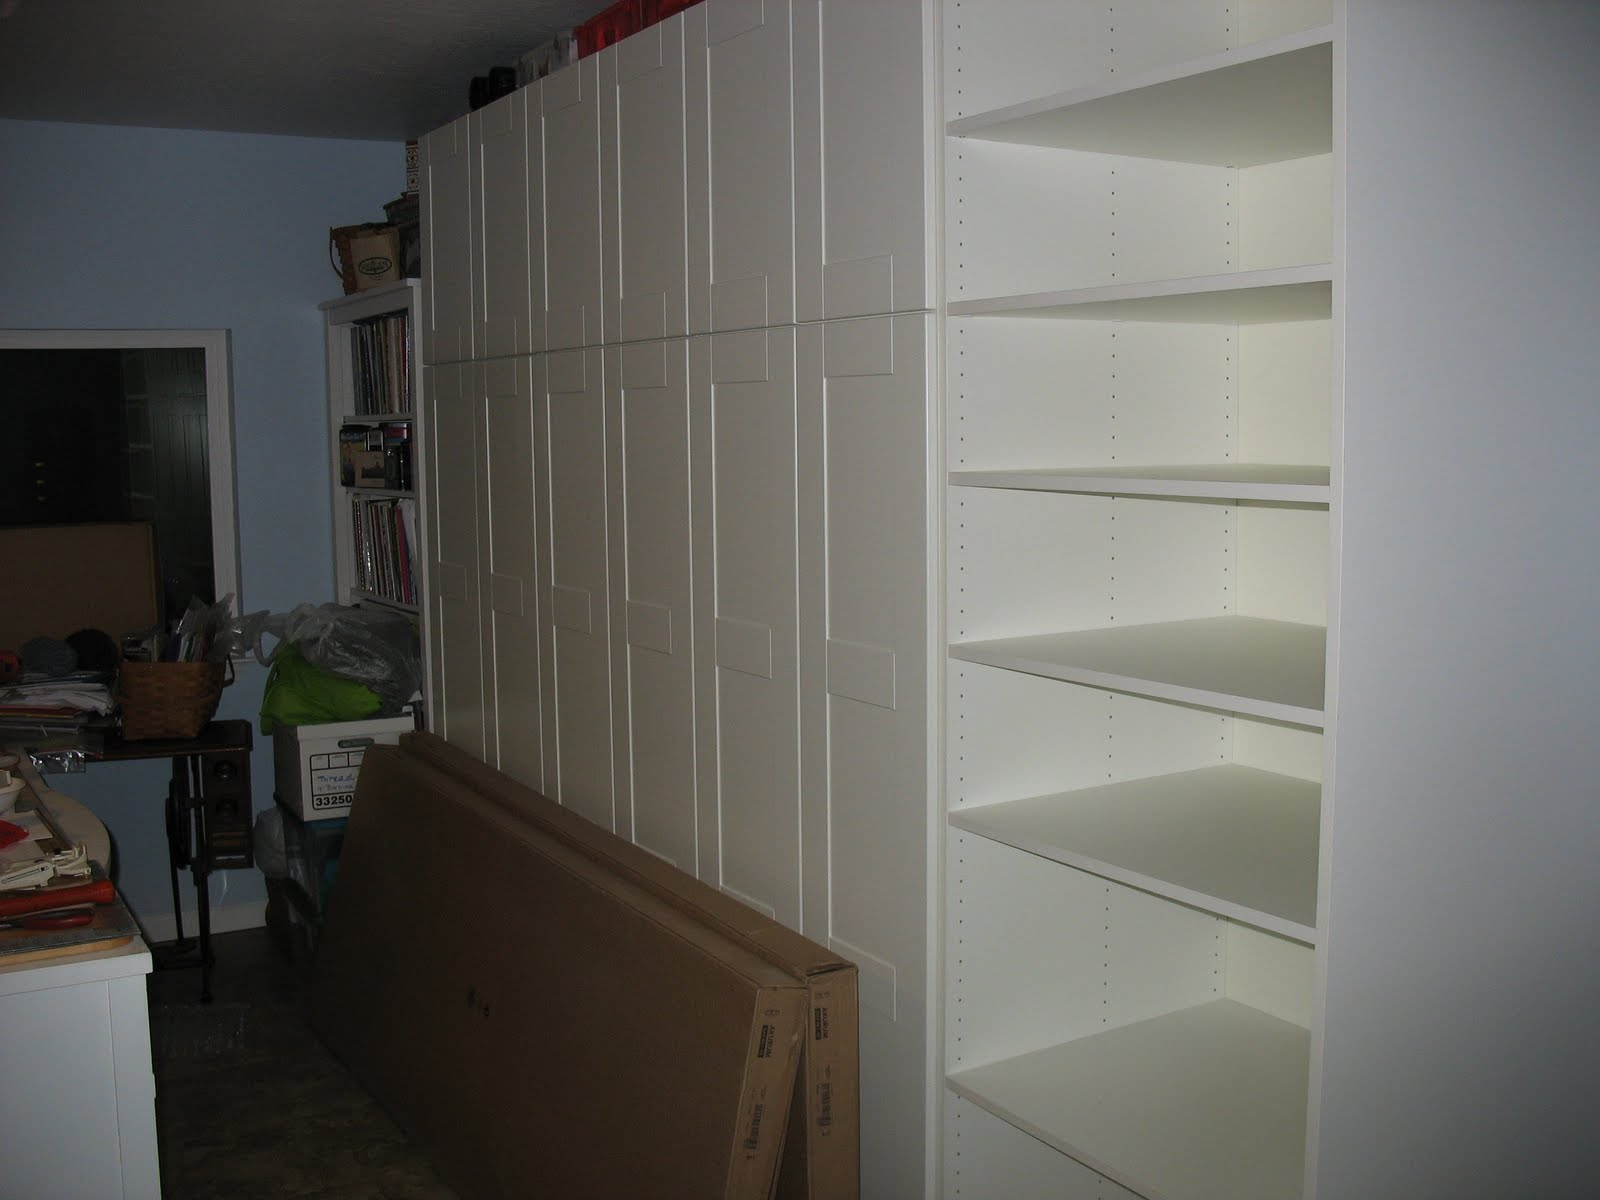 Sewing Room Storage Cabinets Connies Crafts Sewing Room Coming Along